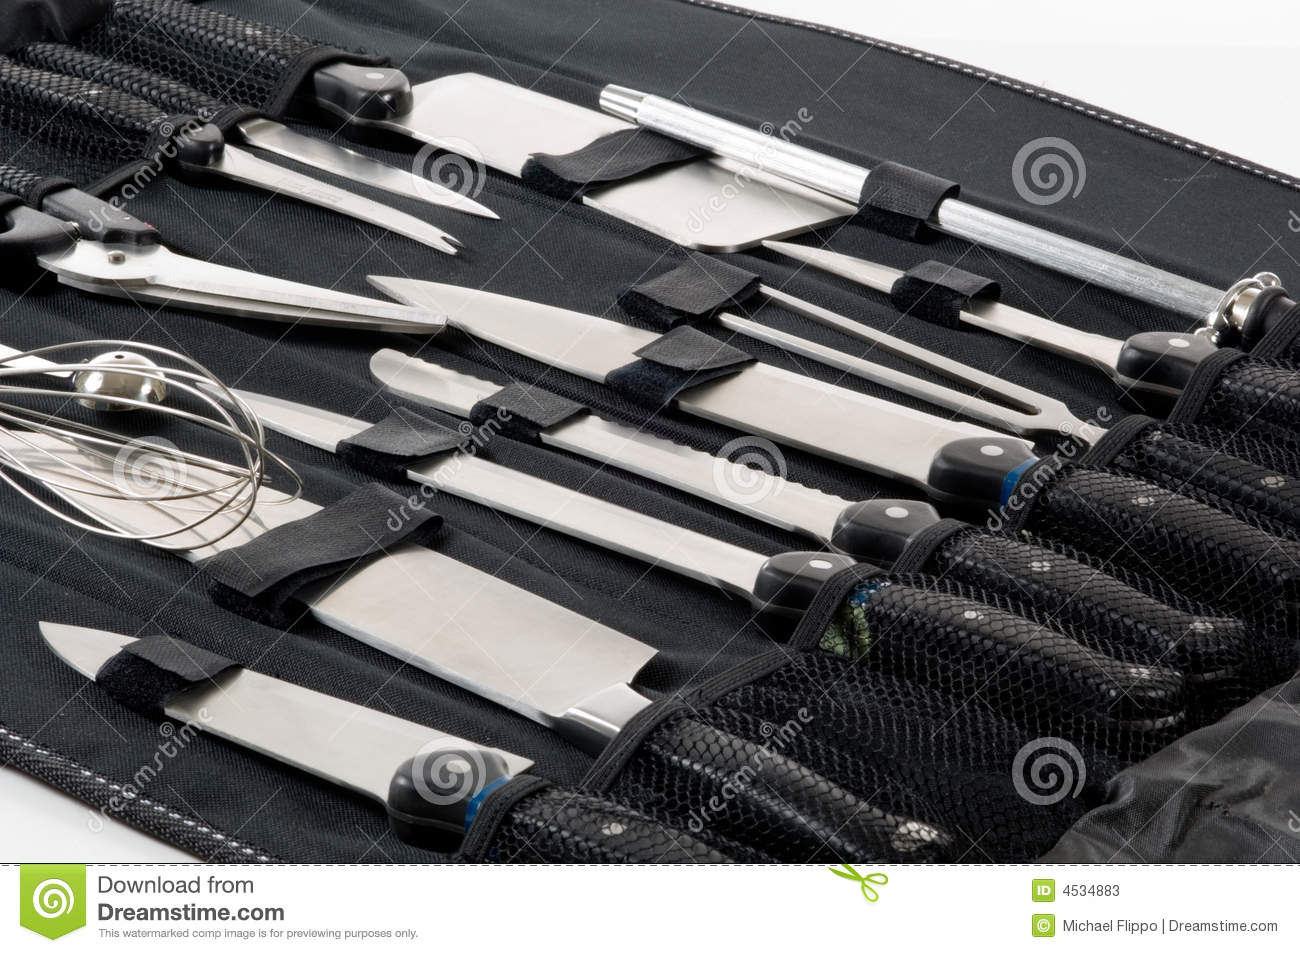 professional chef 39 s knife set in black case stock image image of blade case 4534883. Black Bedroom Furniture Sets. Home Design Ideas